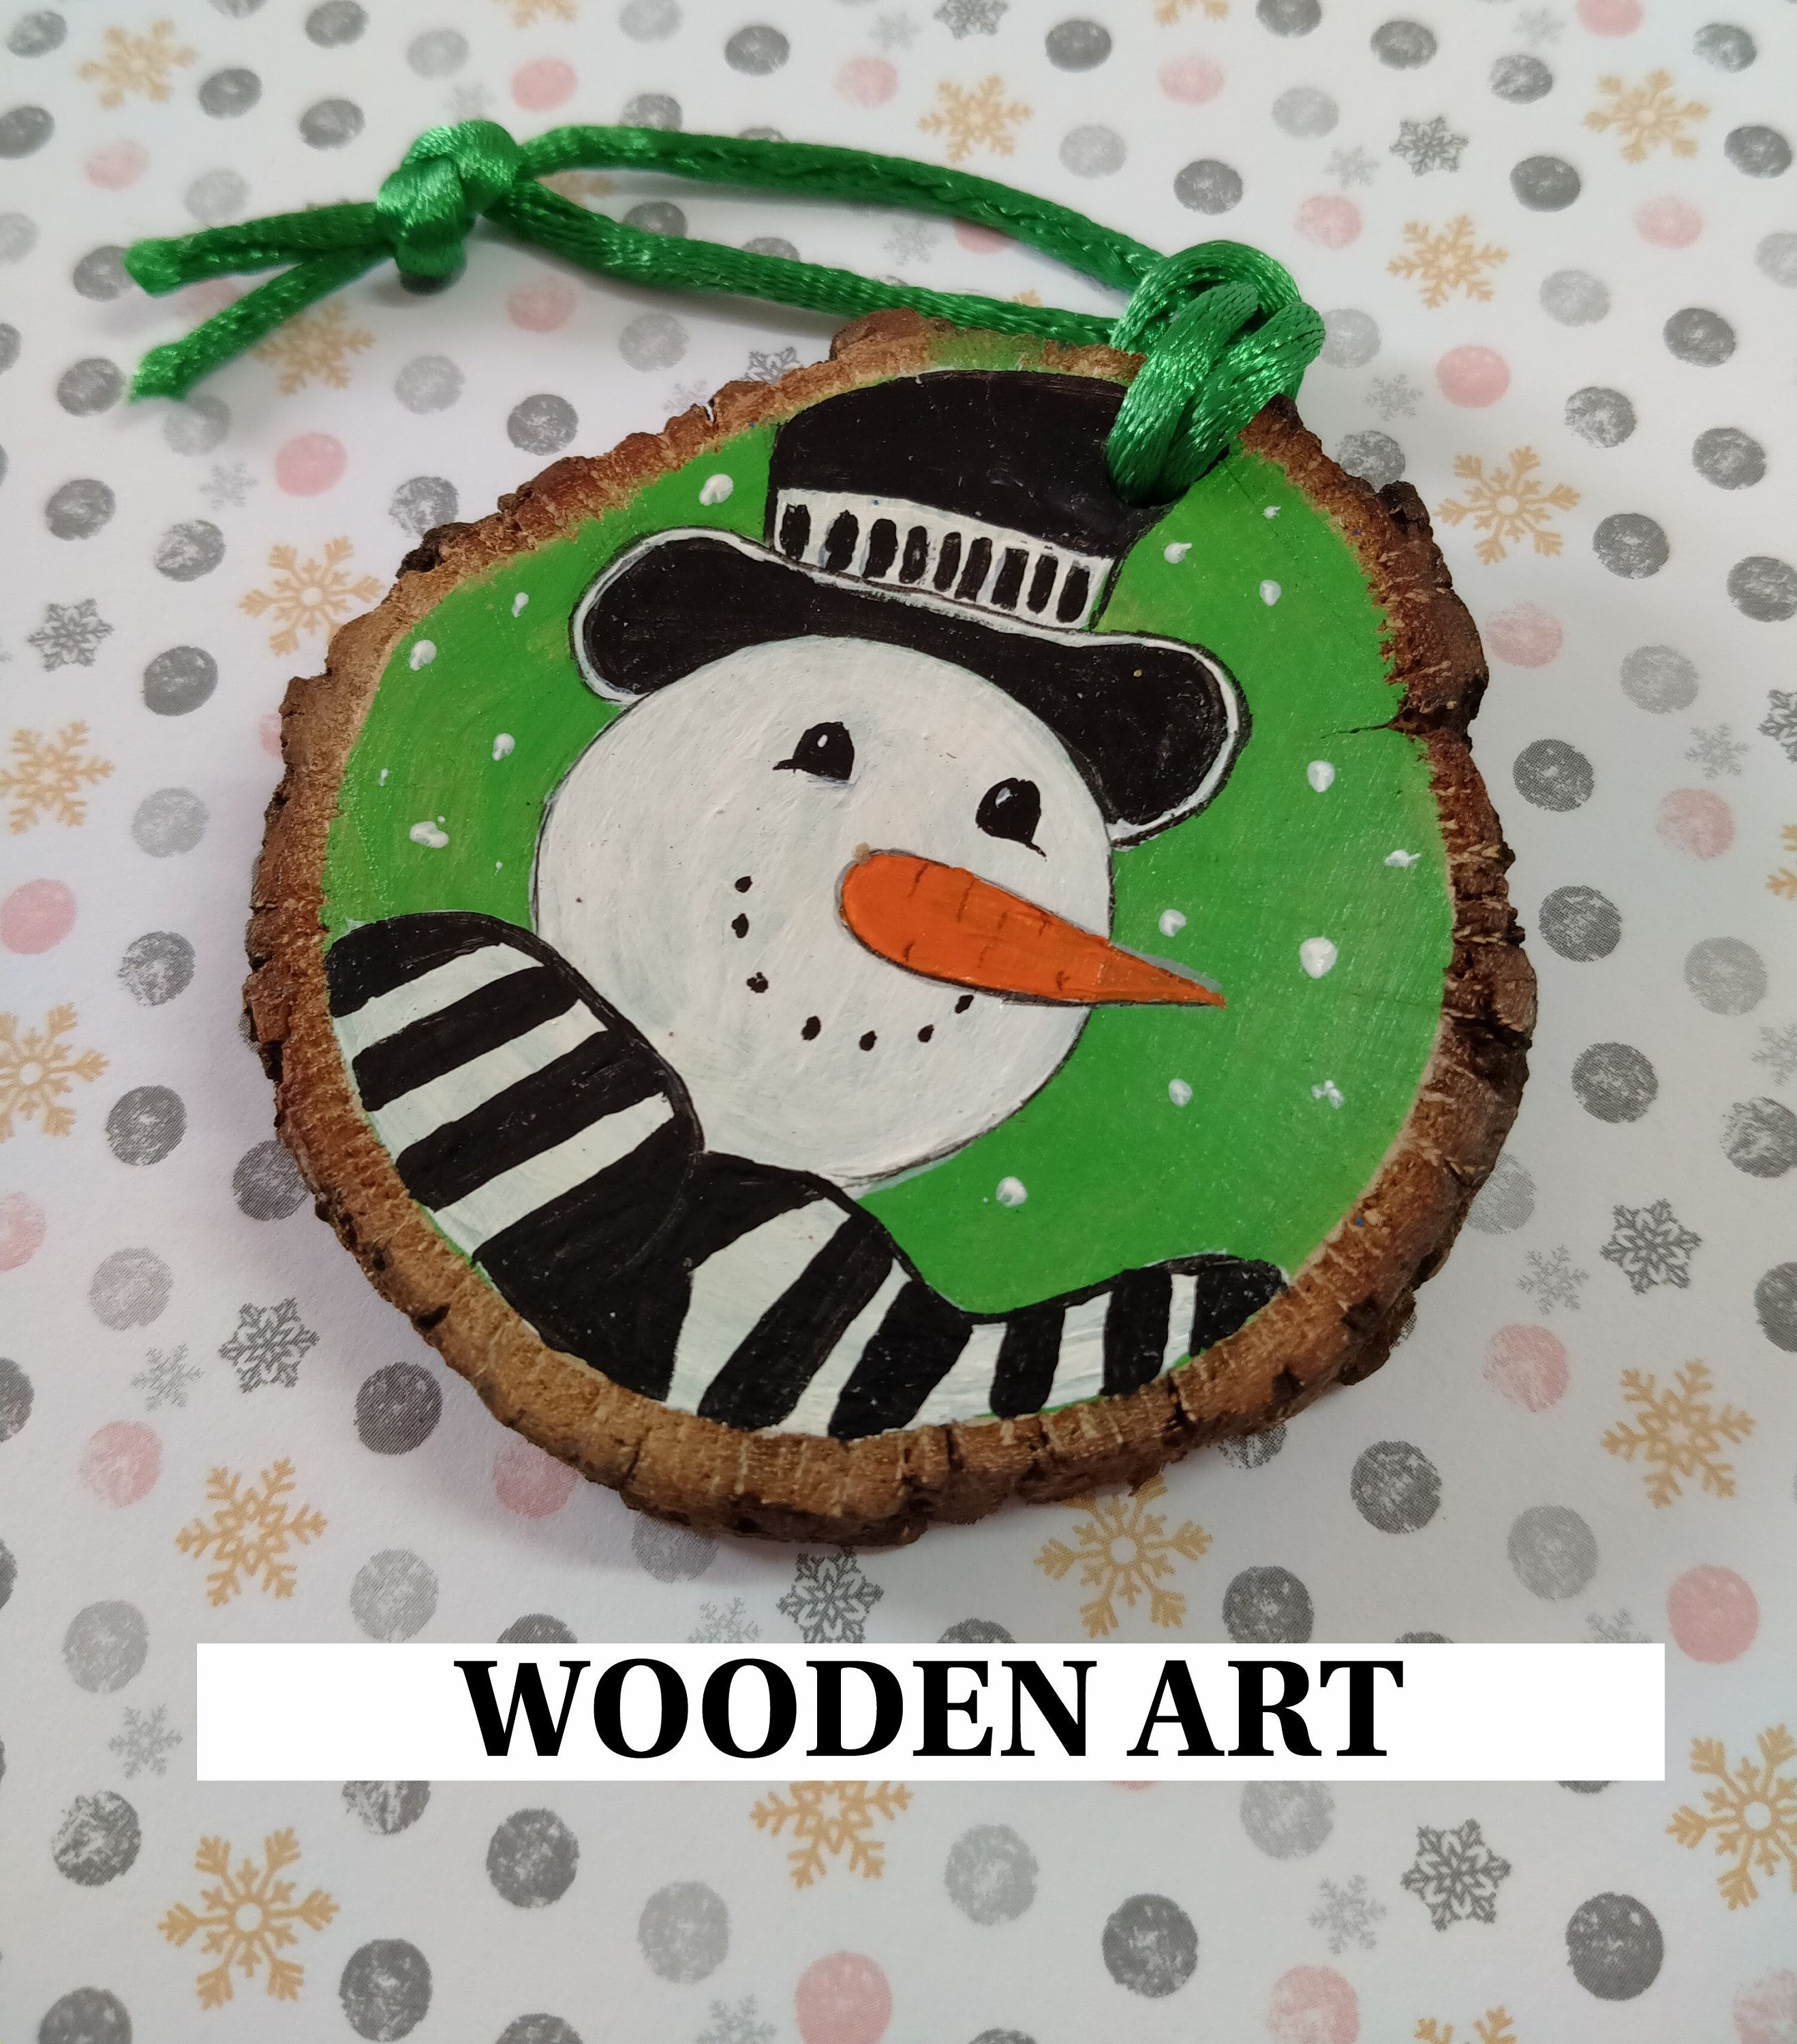 Smiling Snowman Wood Slice Christmas Decoration Hand Painted Etsy In 2021 Painted Christmas Ornaments Wooden Ornaments Diy Wood Slices